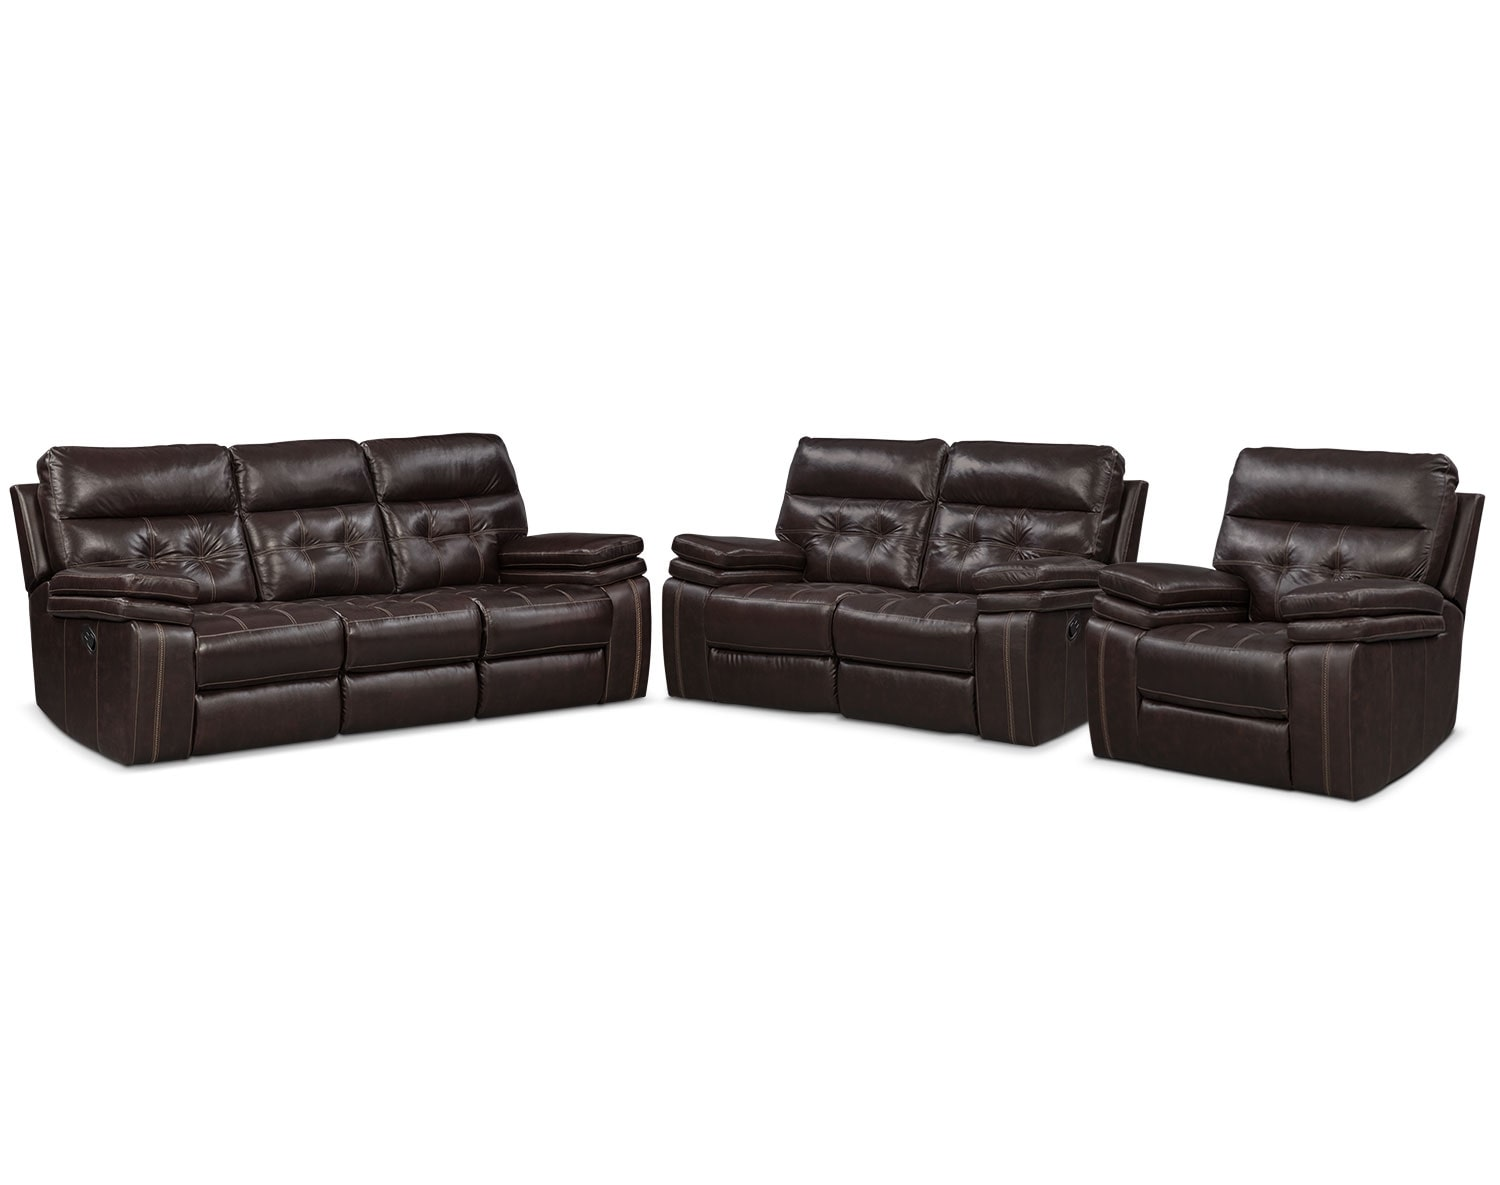 The Brisco Brown Manual Reclining Collection